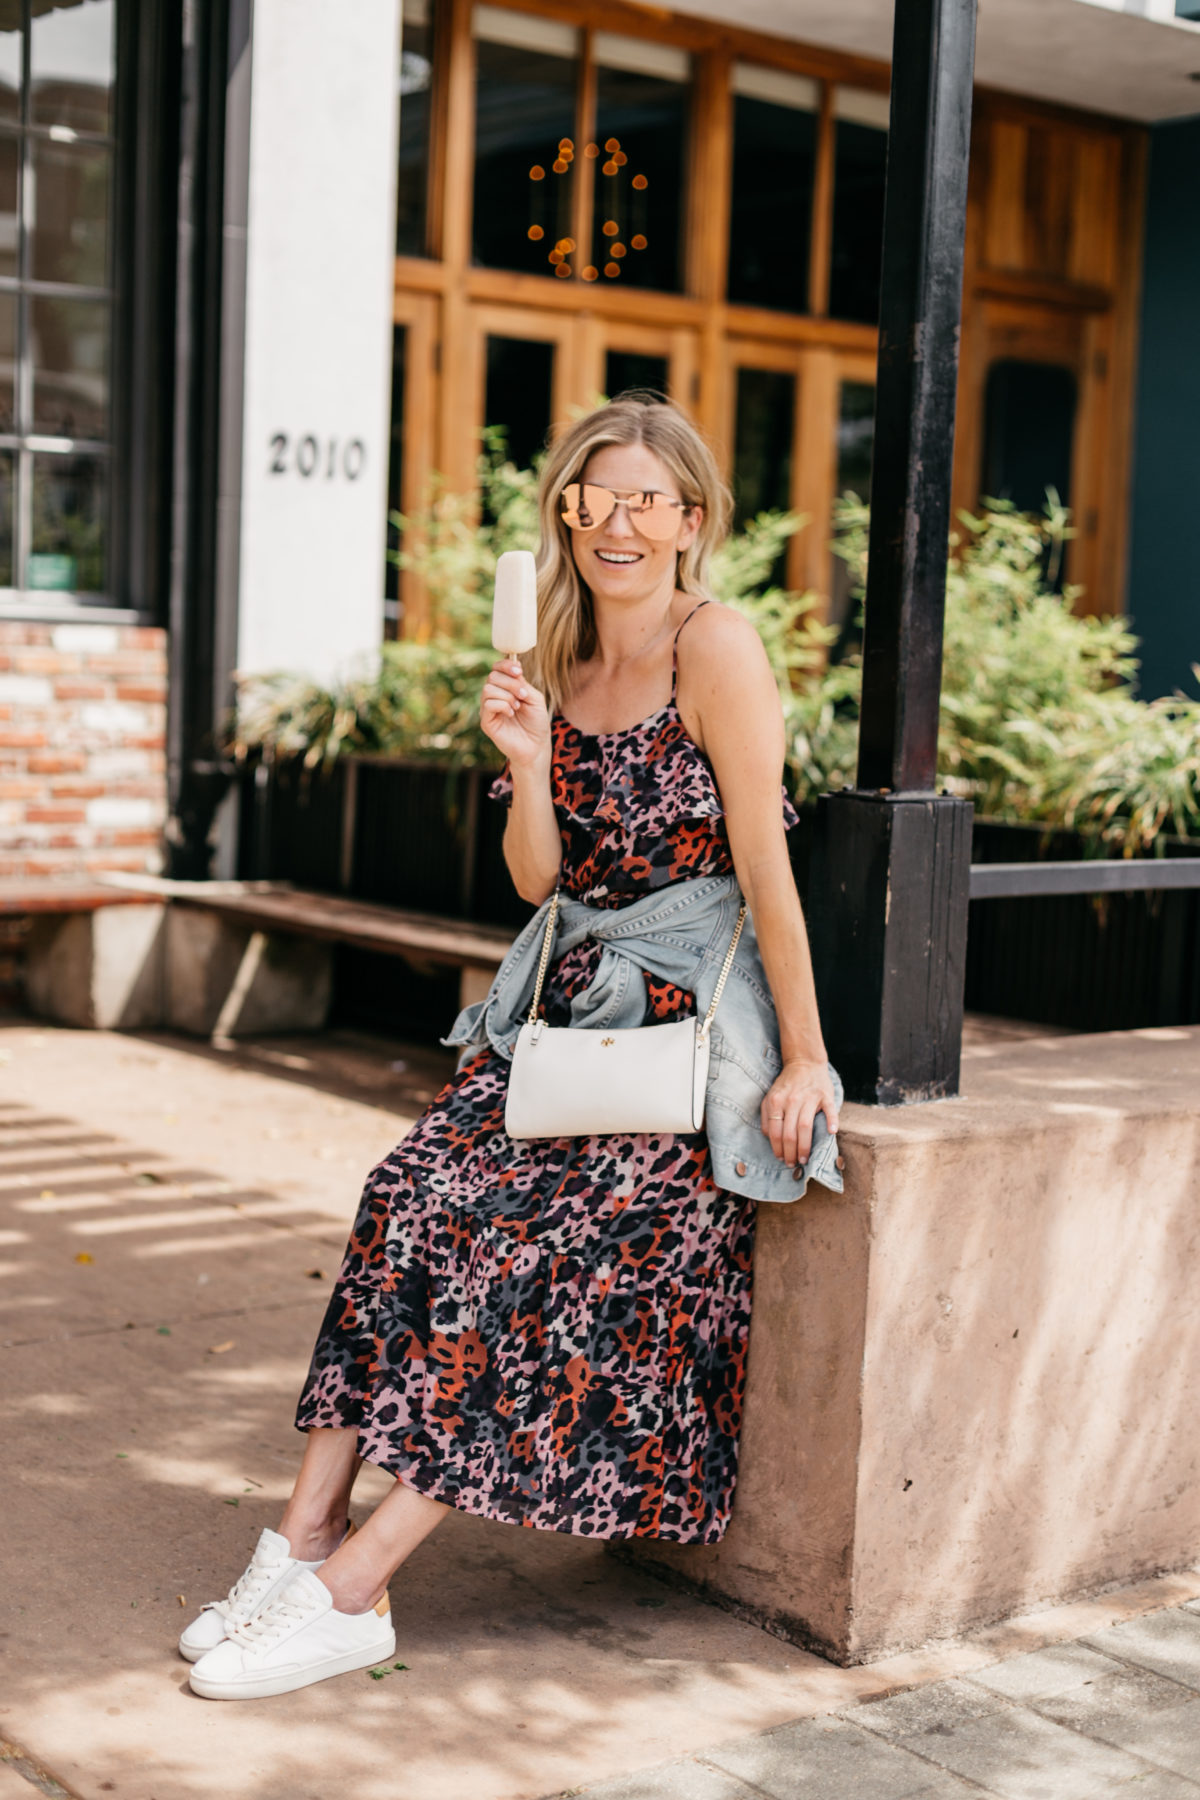 Spring Fashion 2019 - Floral Dress